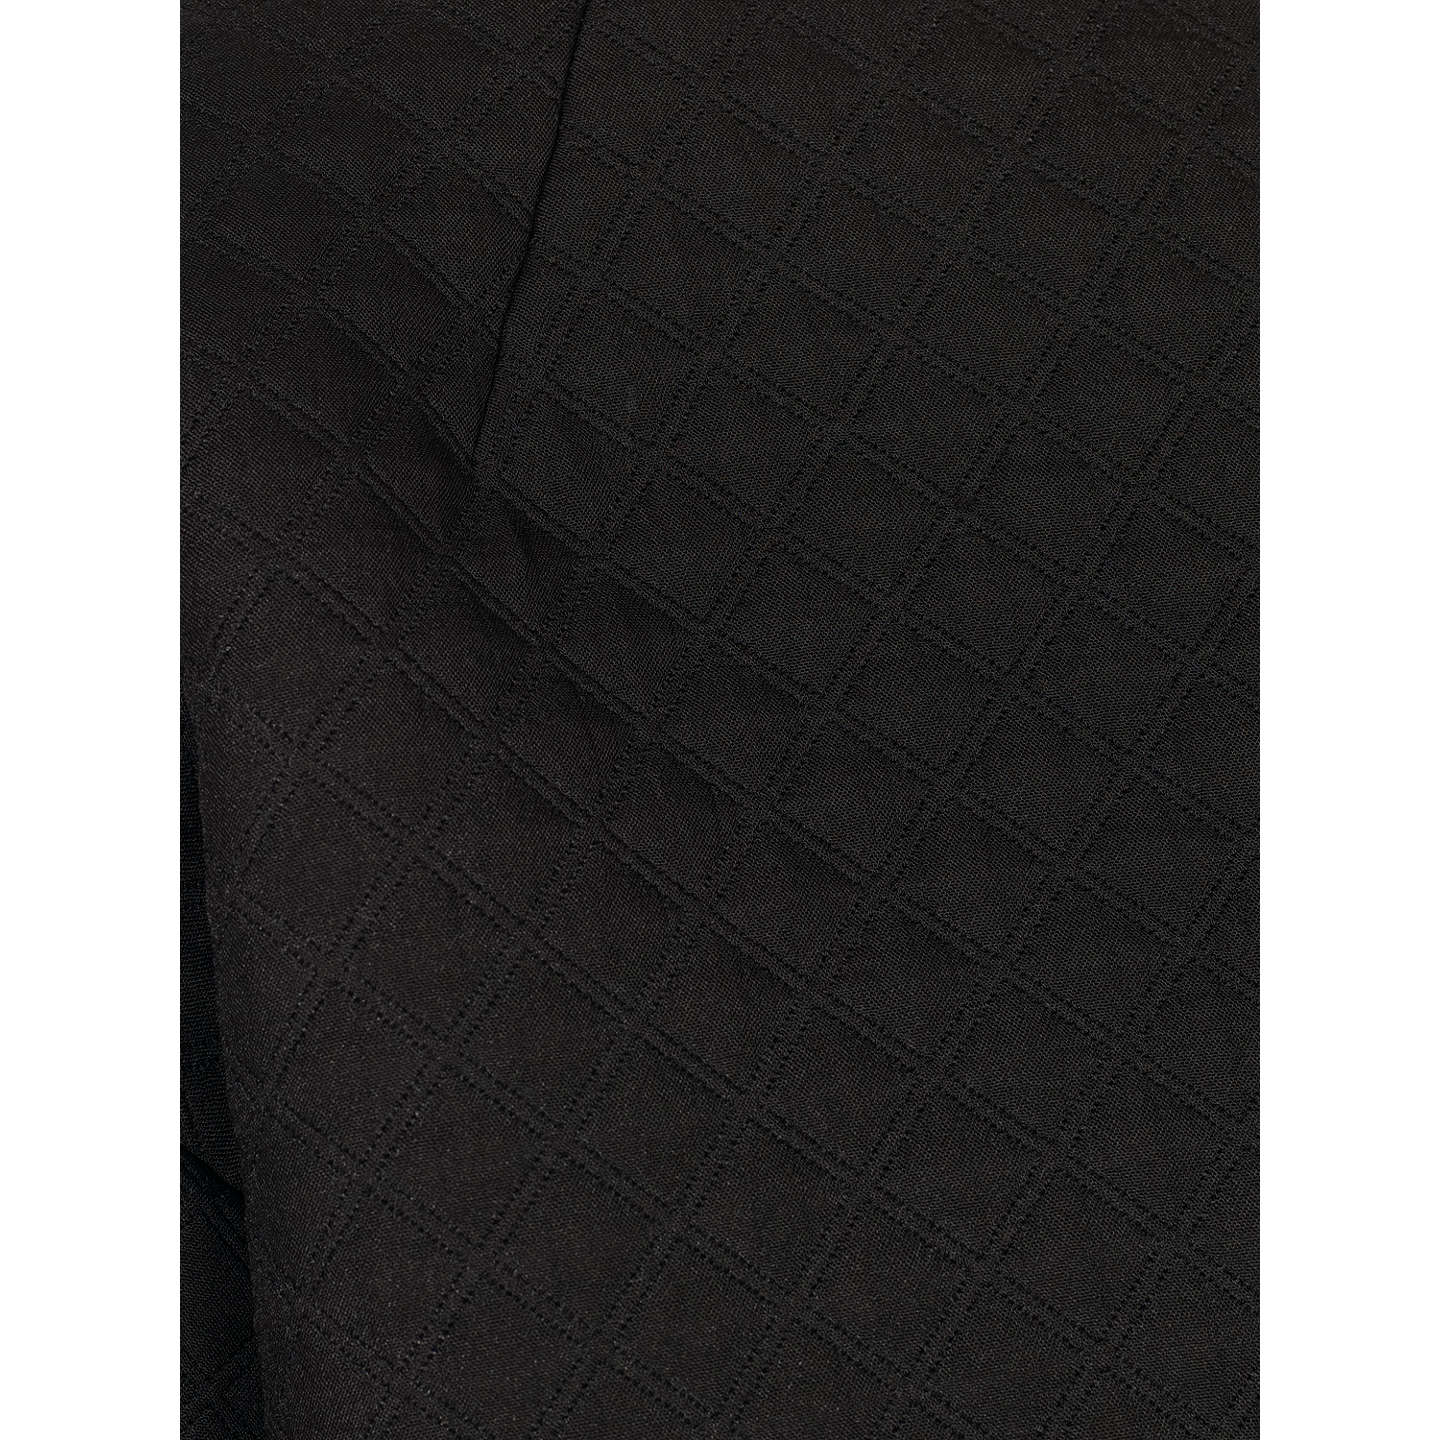 BuyKin by John Lewis Quilted Boxy Jacket, Black, 8 Online at johnlewis.com